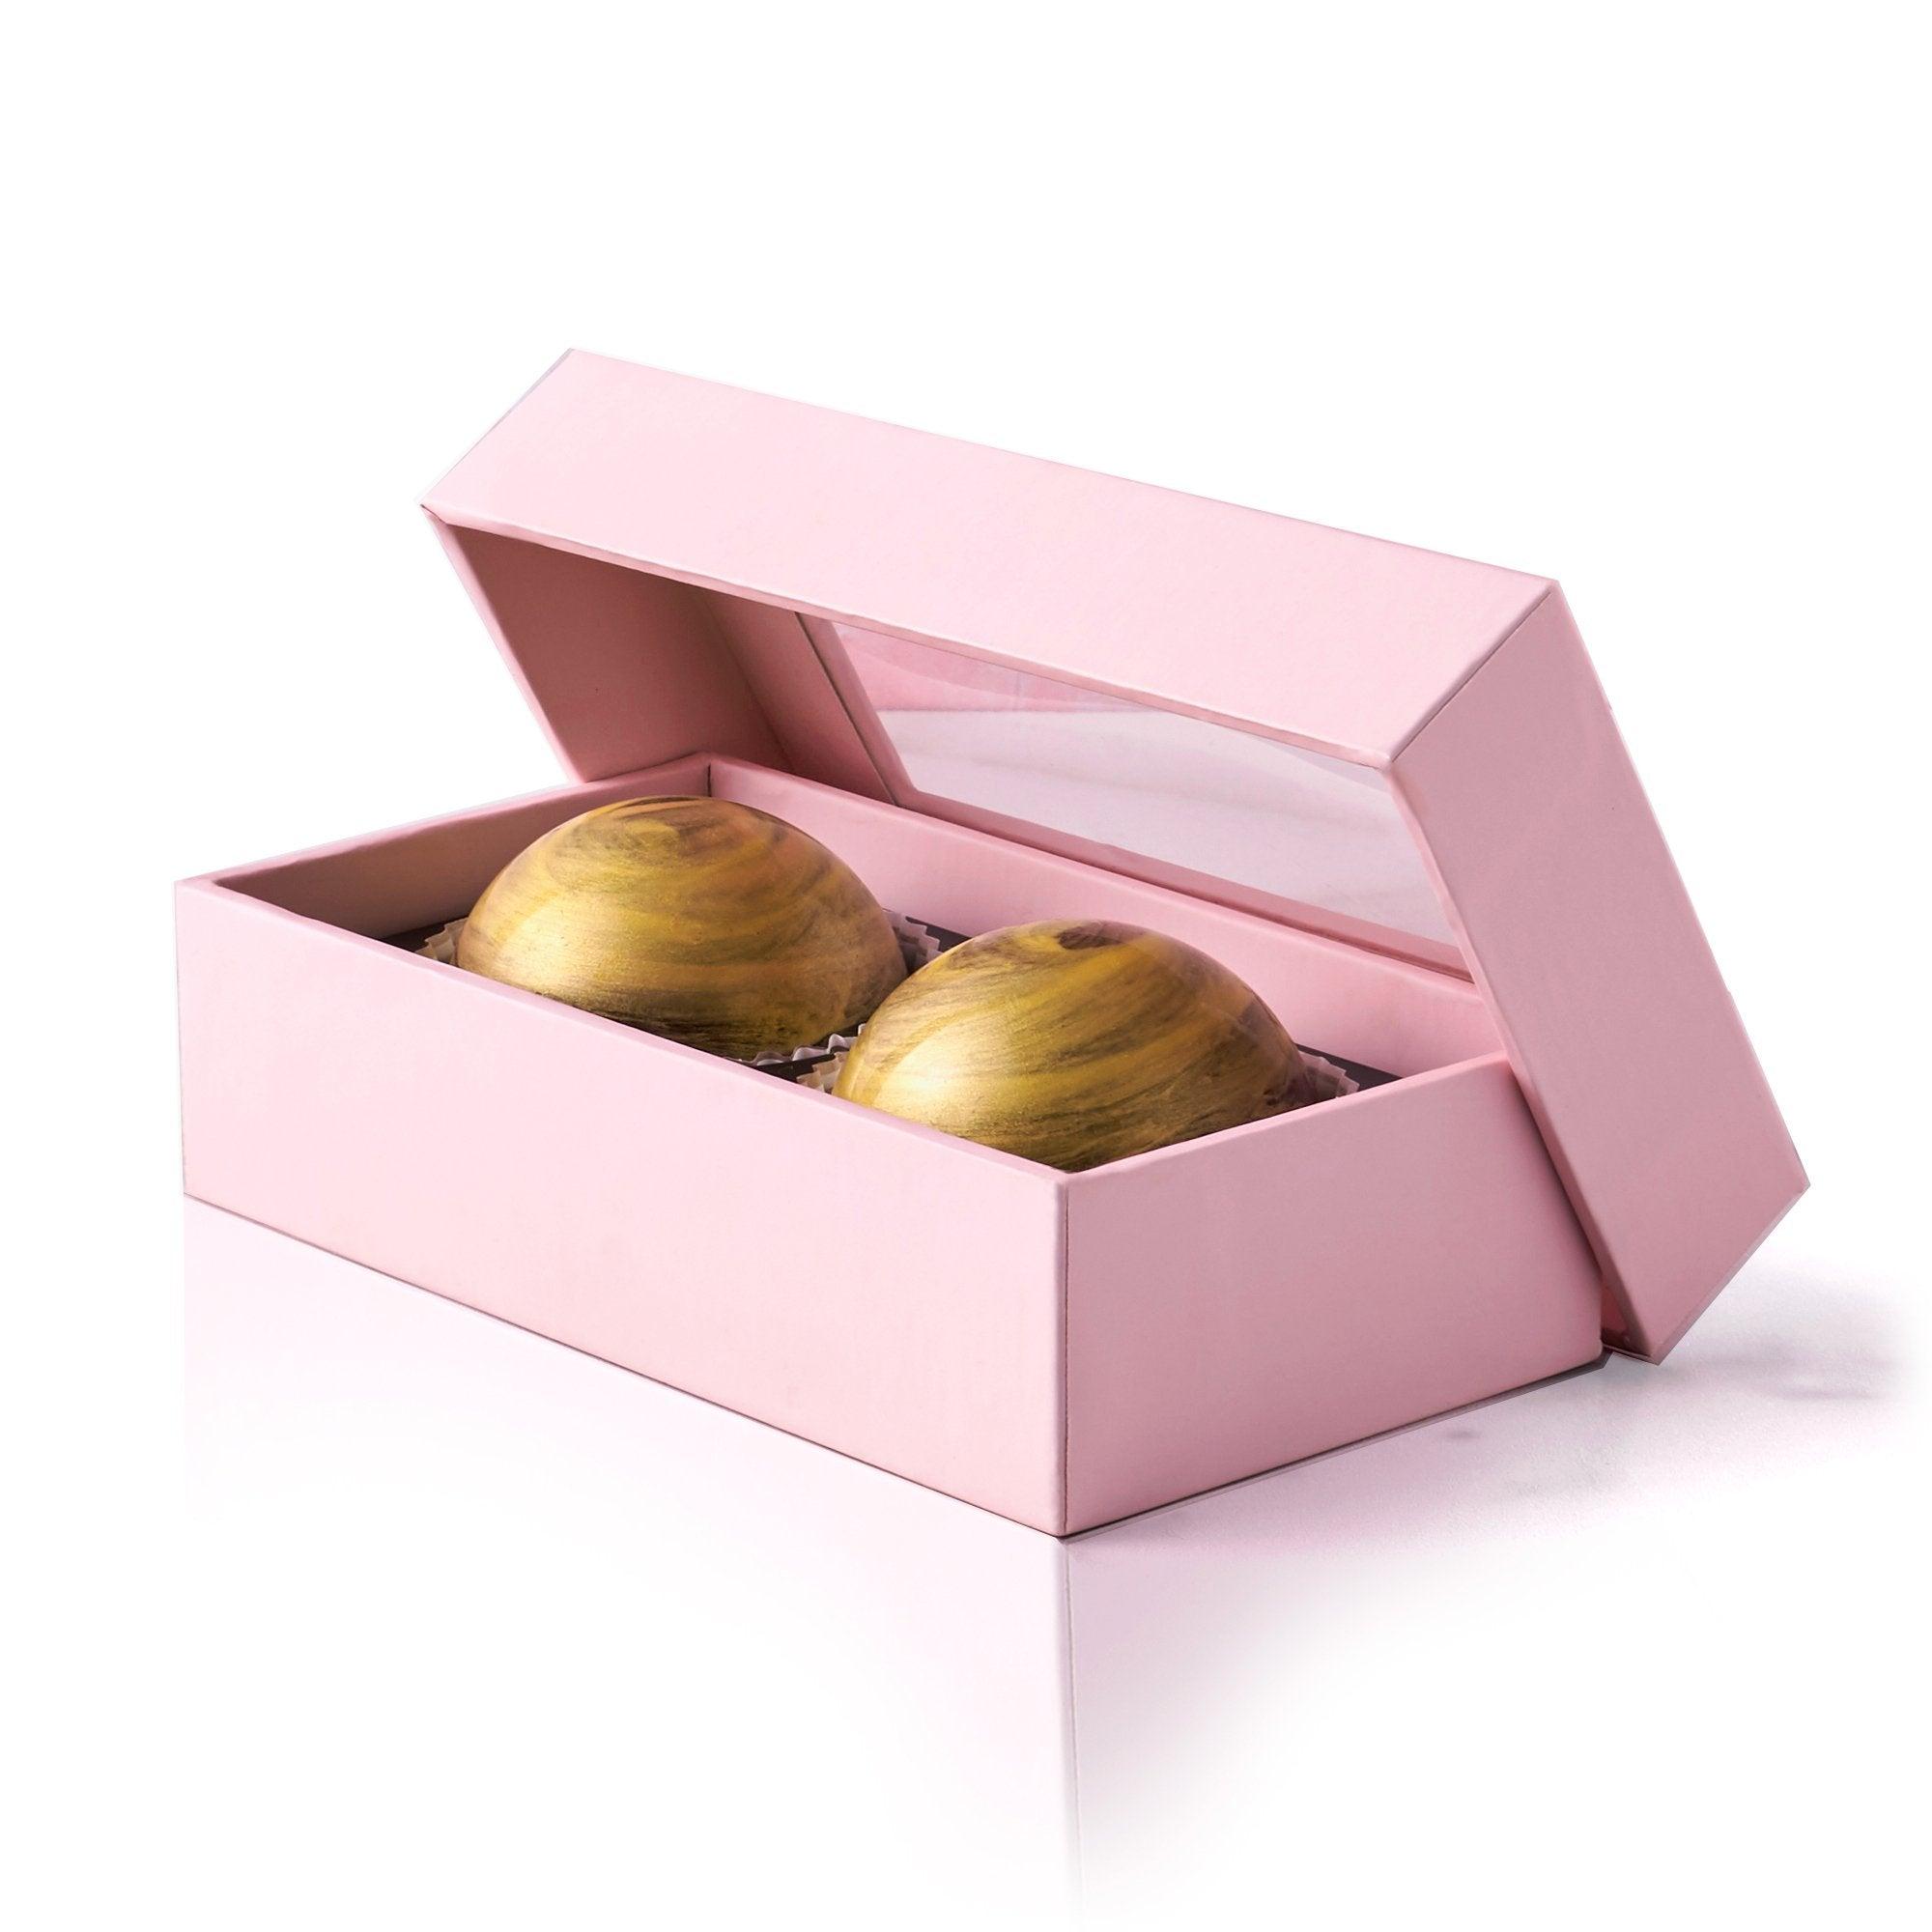 Pecan Praline Chocolate Truffle Box, 2 pc.